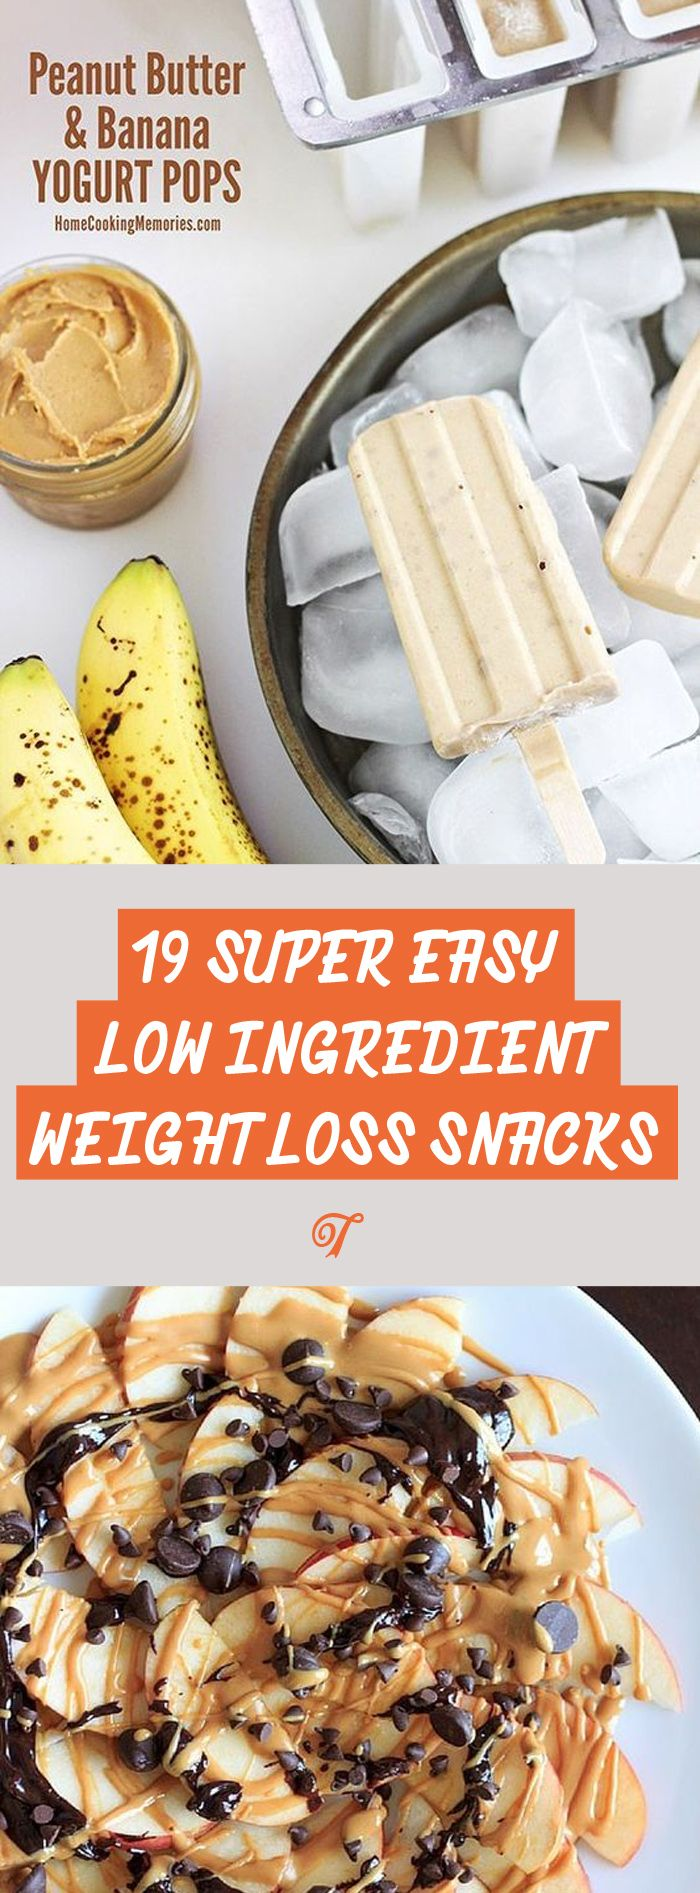 low-ingredient-weight-loss-snacks